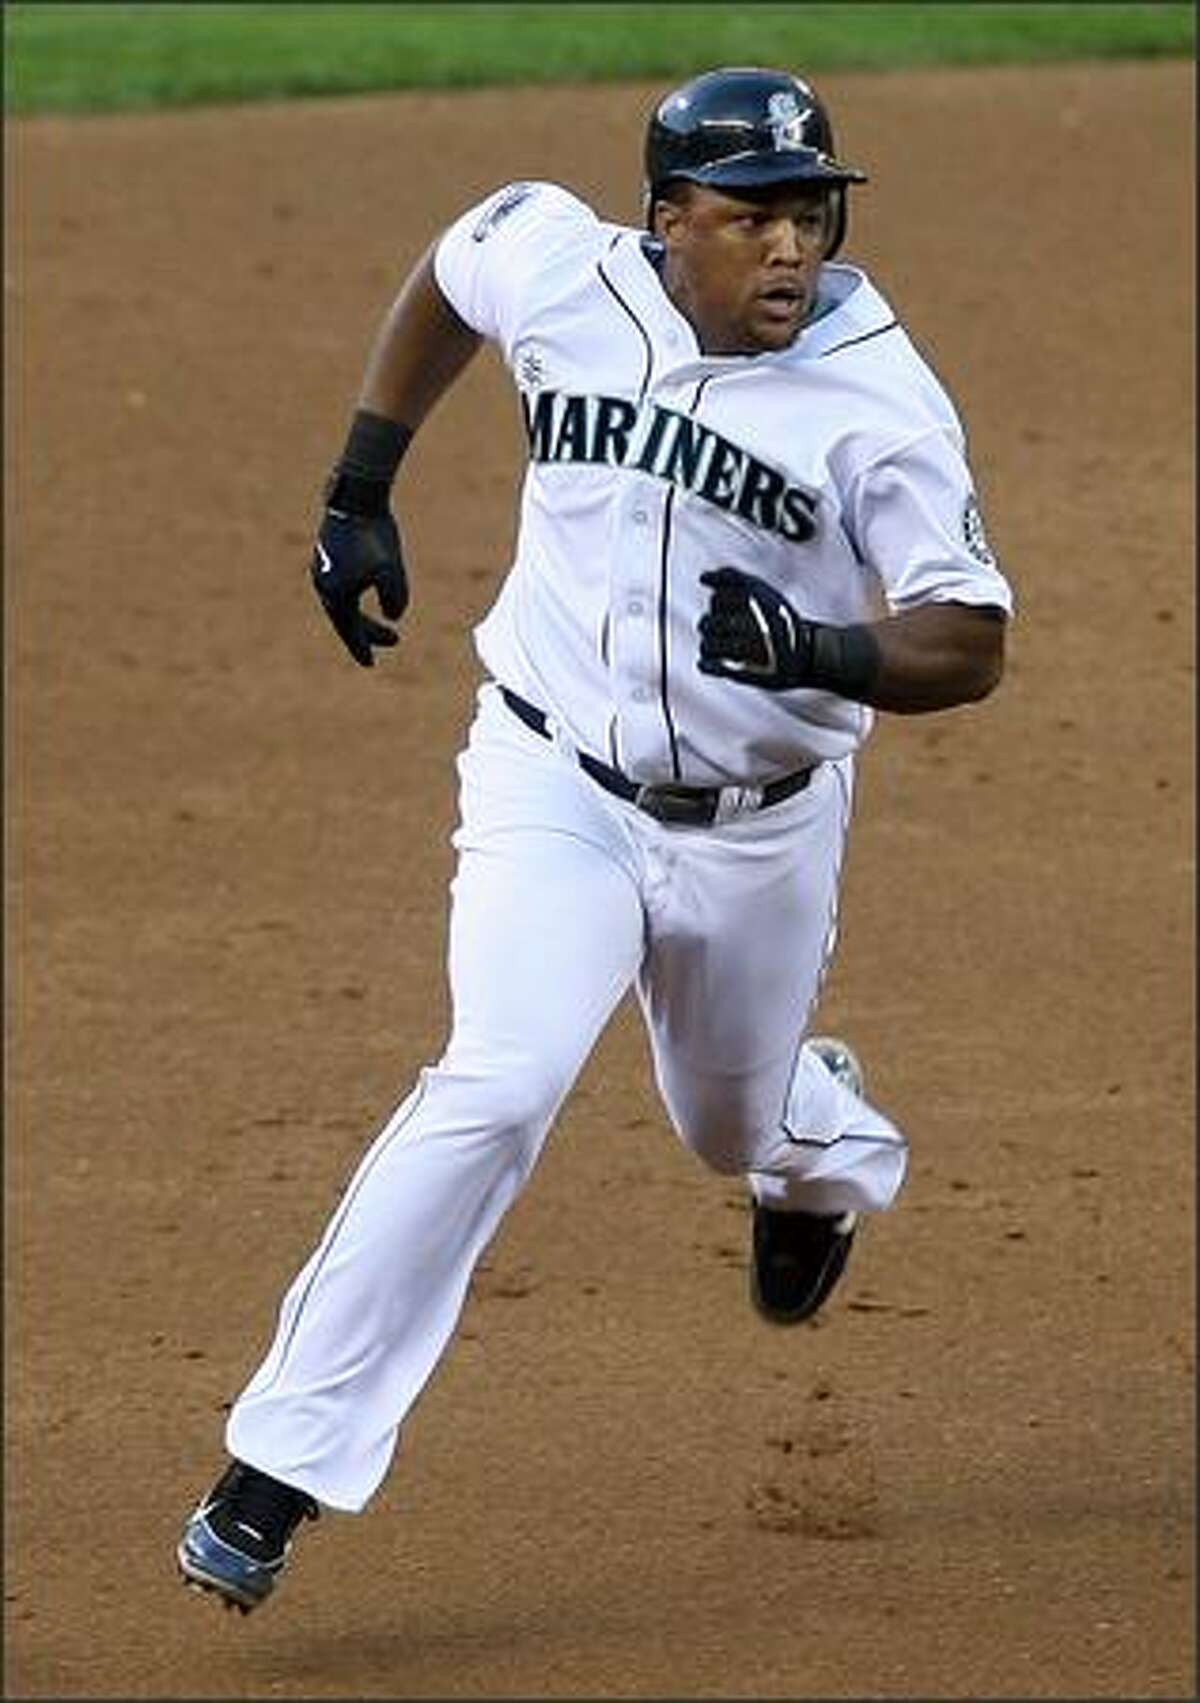 Seattle Mariners Adrian Beltre hustles to third after tripling off of Los Angeles Angels Ervin Santana during first inning action at Safeco Field in Seattle, Wash., Tuesday August 28, 2007. Jose Guillen and Raul Ibanez score.